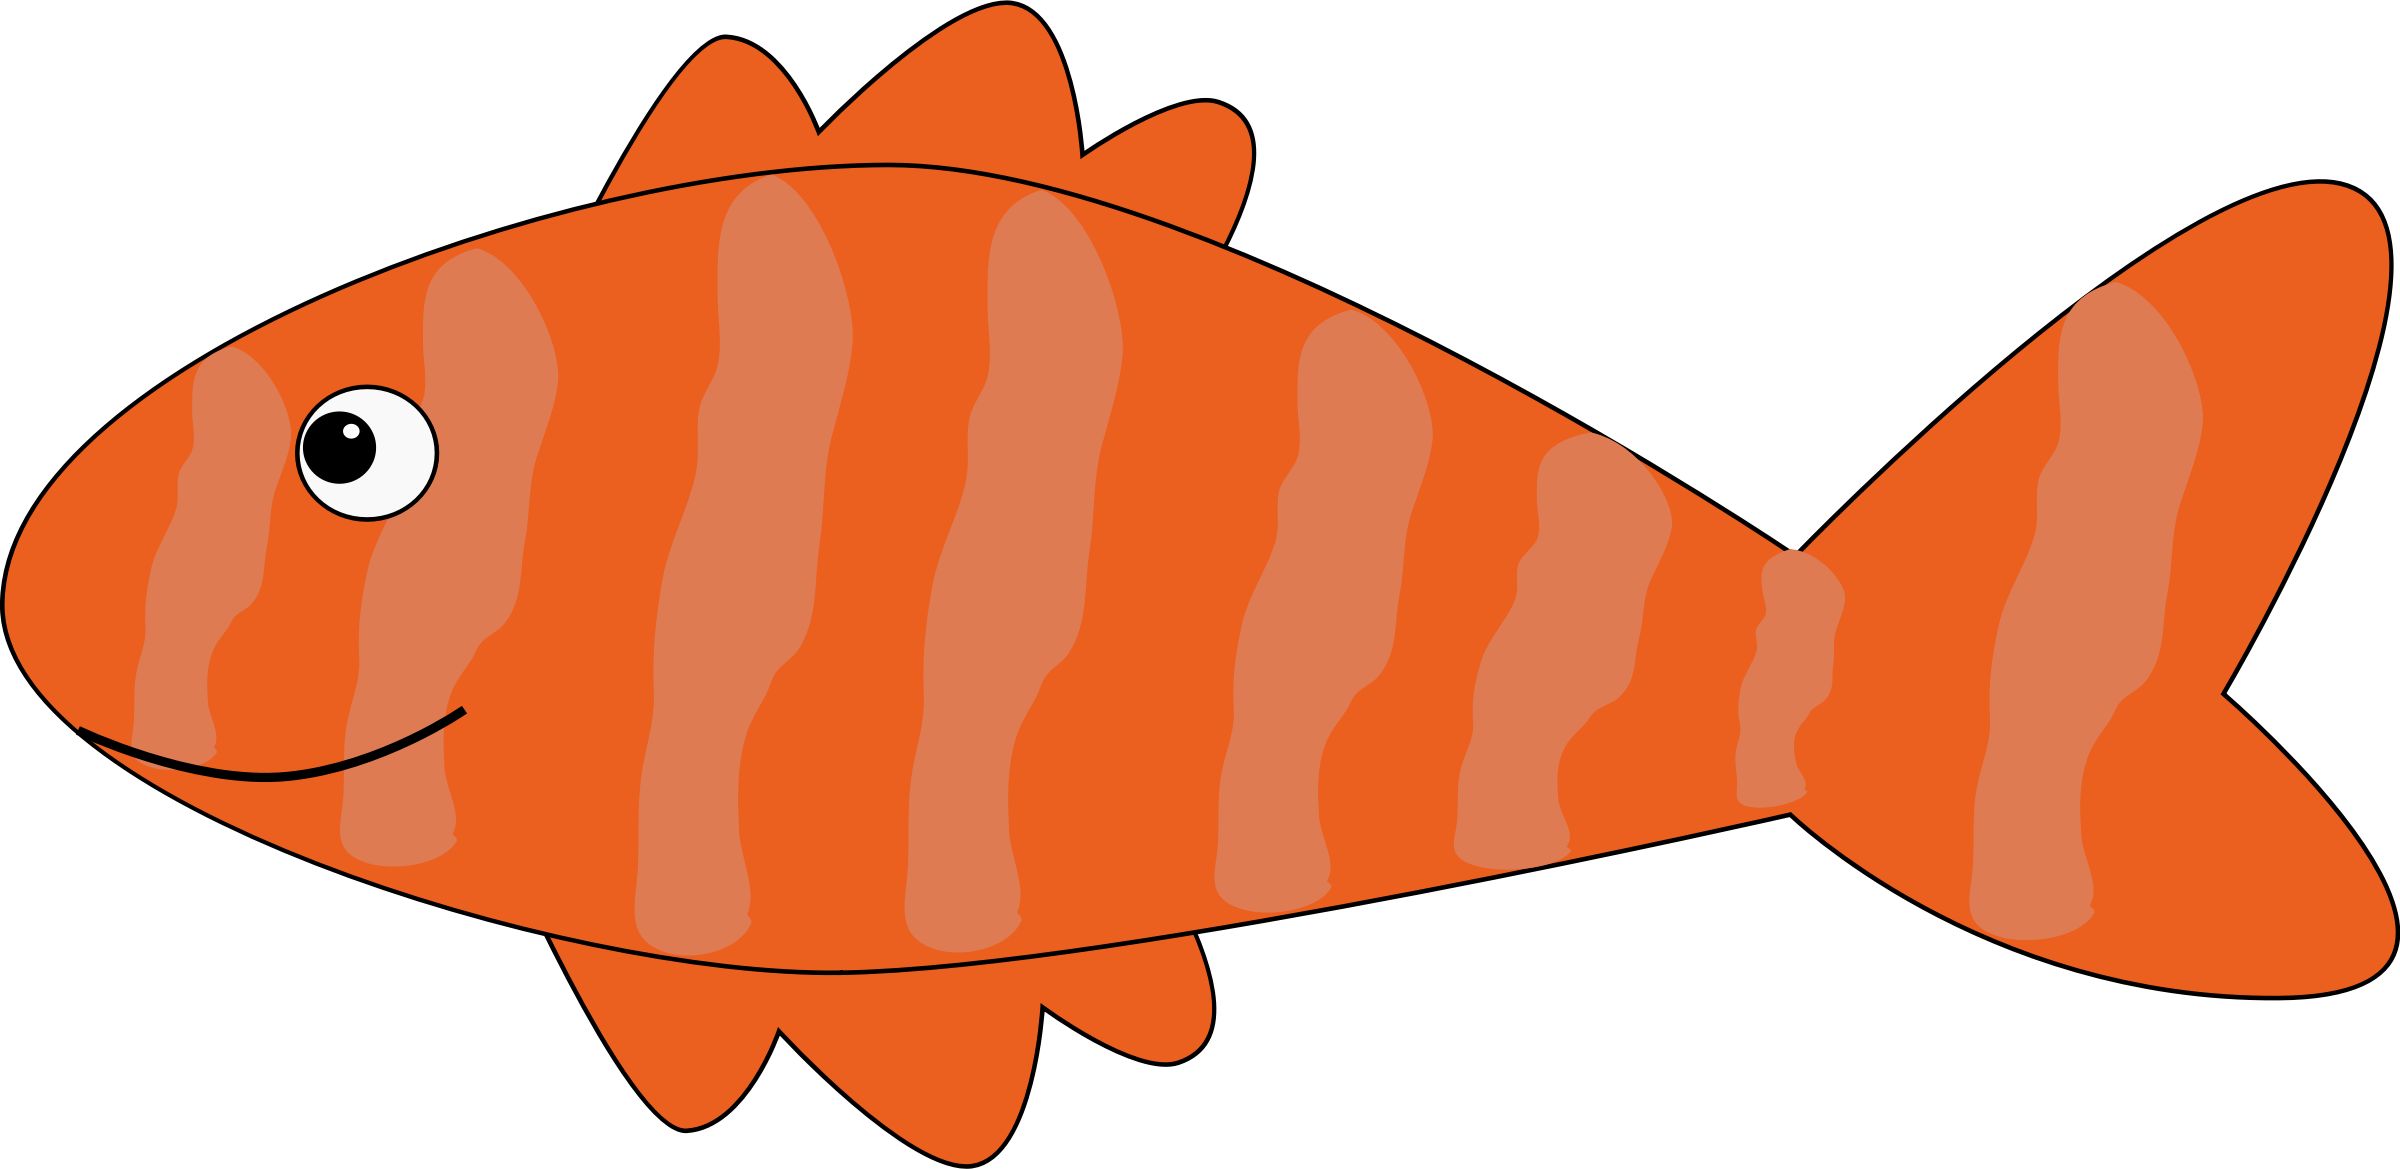 Clipart fish animation. Cartoon icons png free